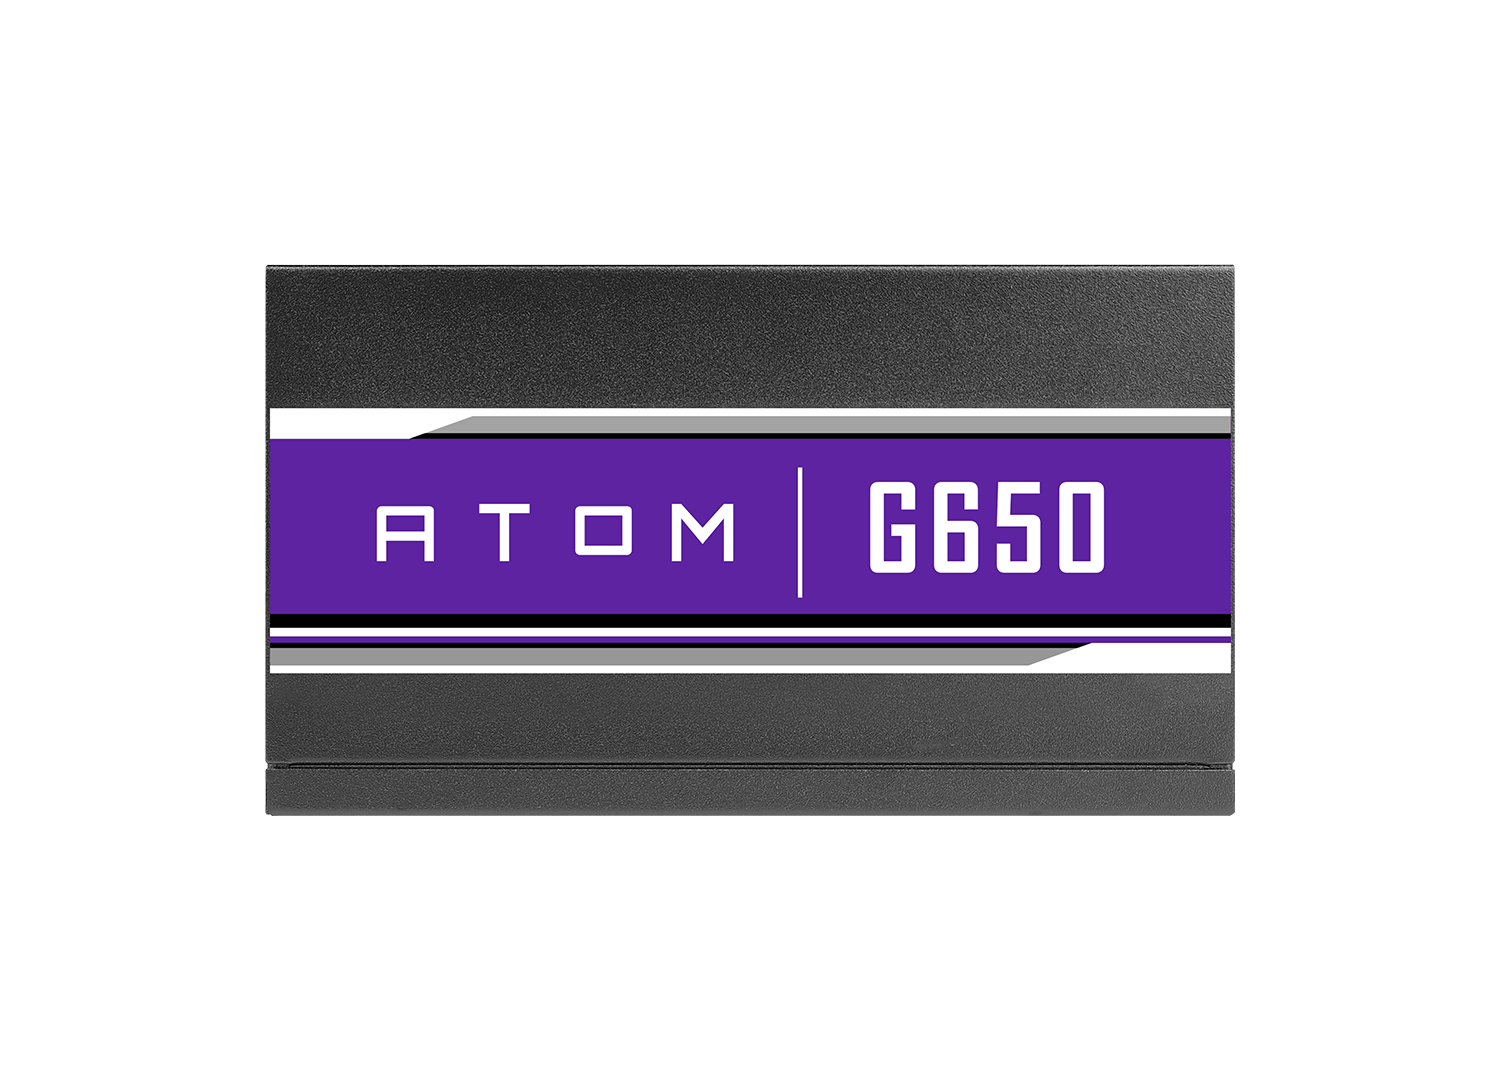 ATOM_G_650W_retouch-6.png